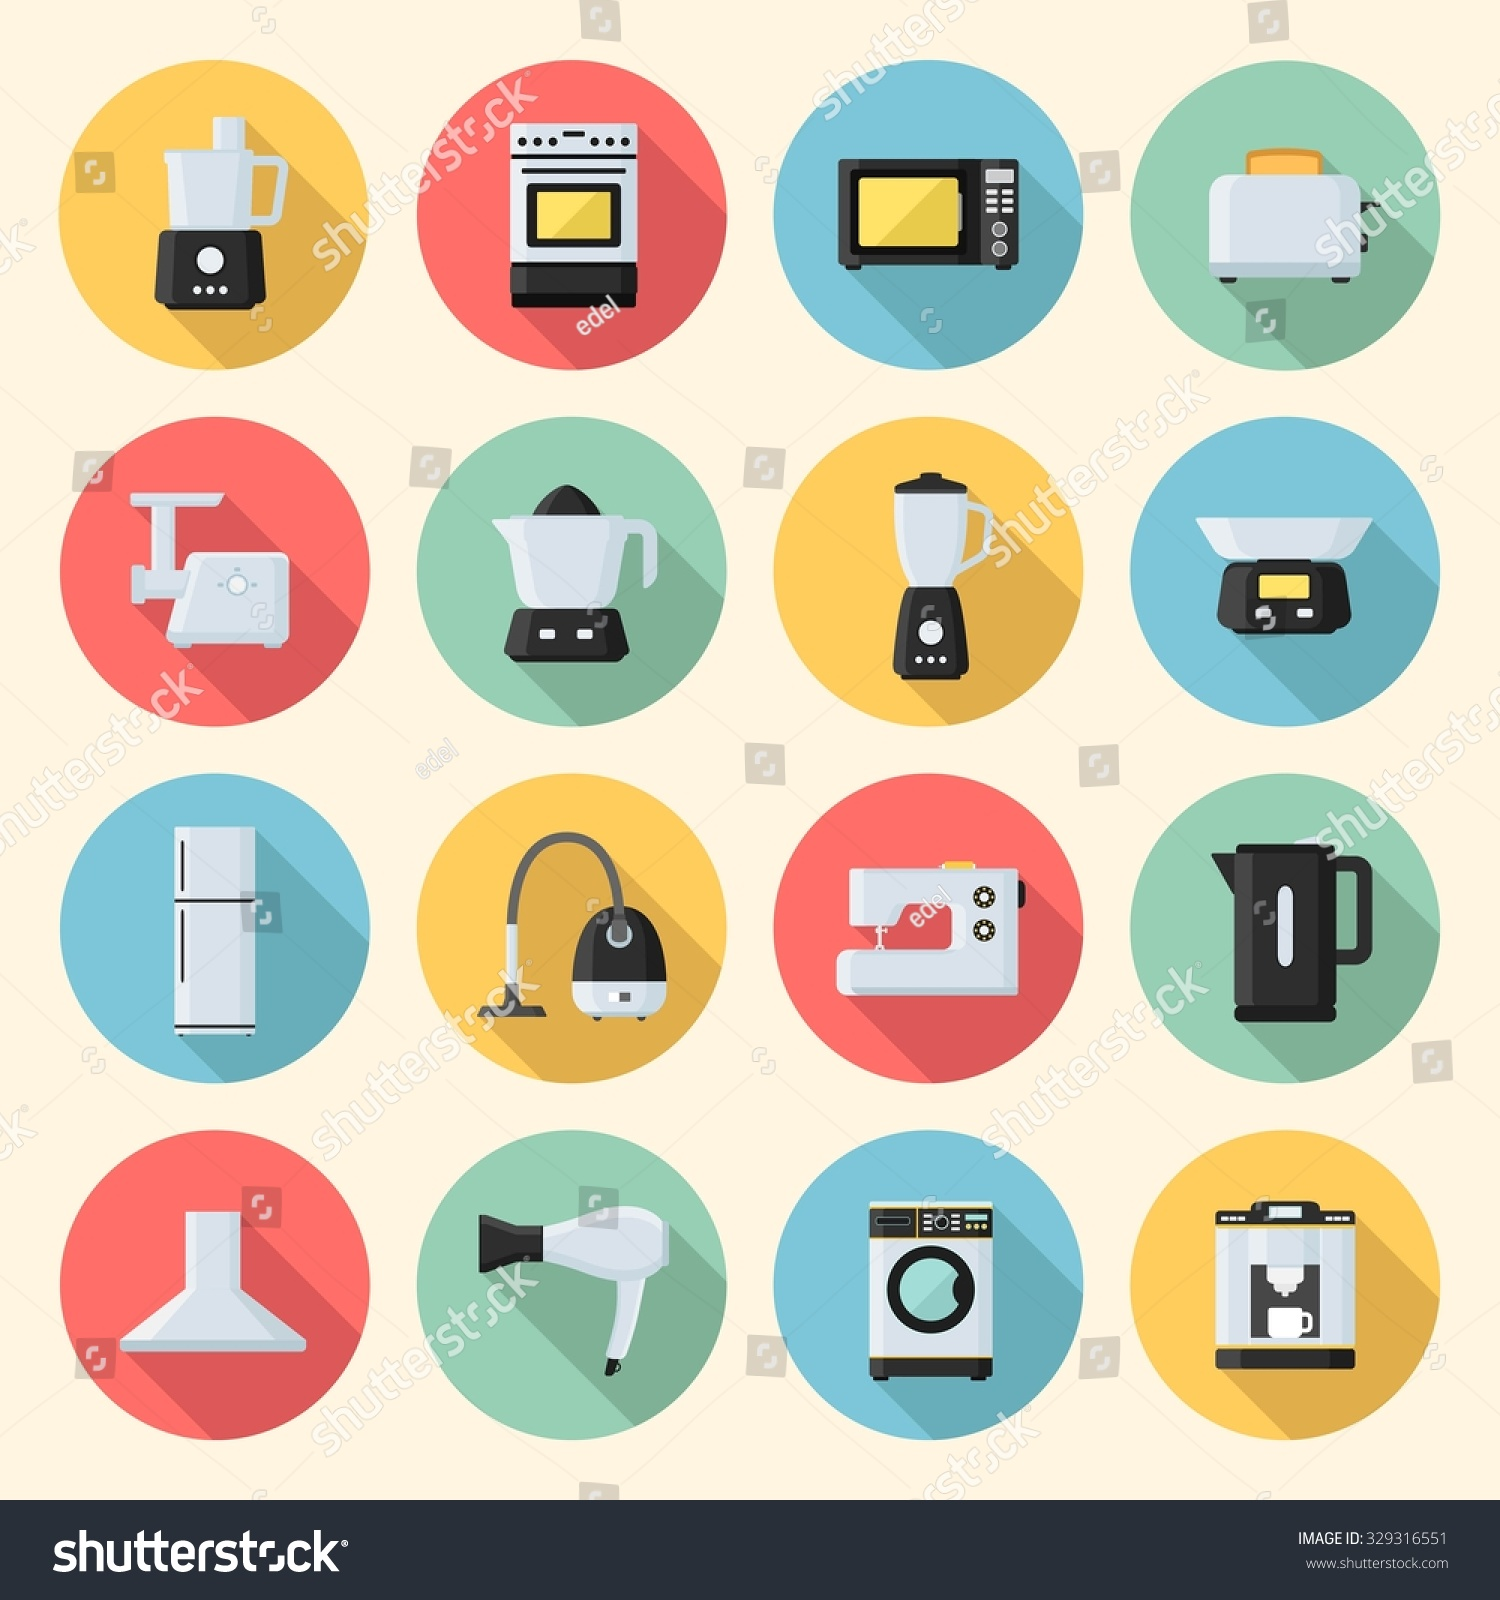 home appliances electronics colorful flat style stock vector 329316551 shutterstock. Black Bedroom Furniture Sets. Home Design Ideas